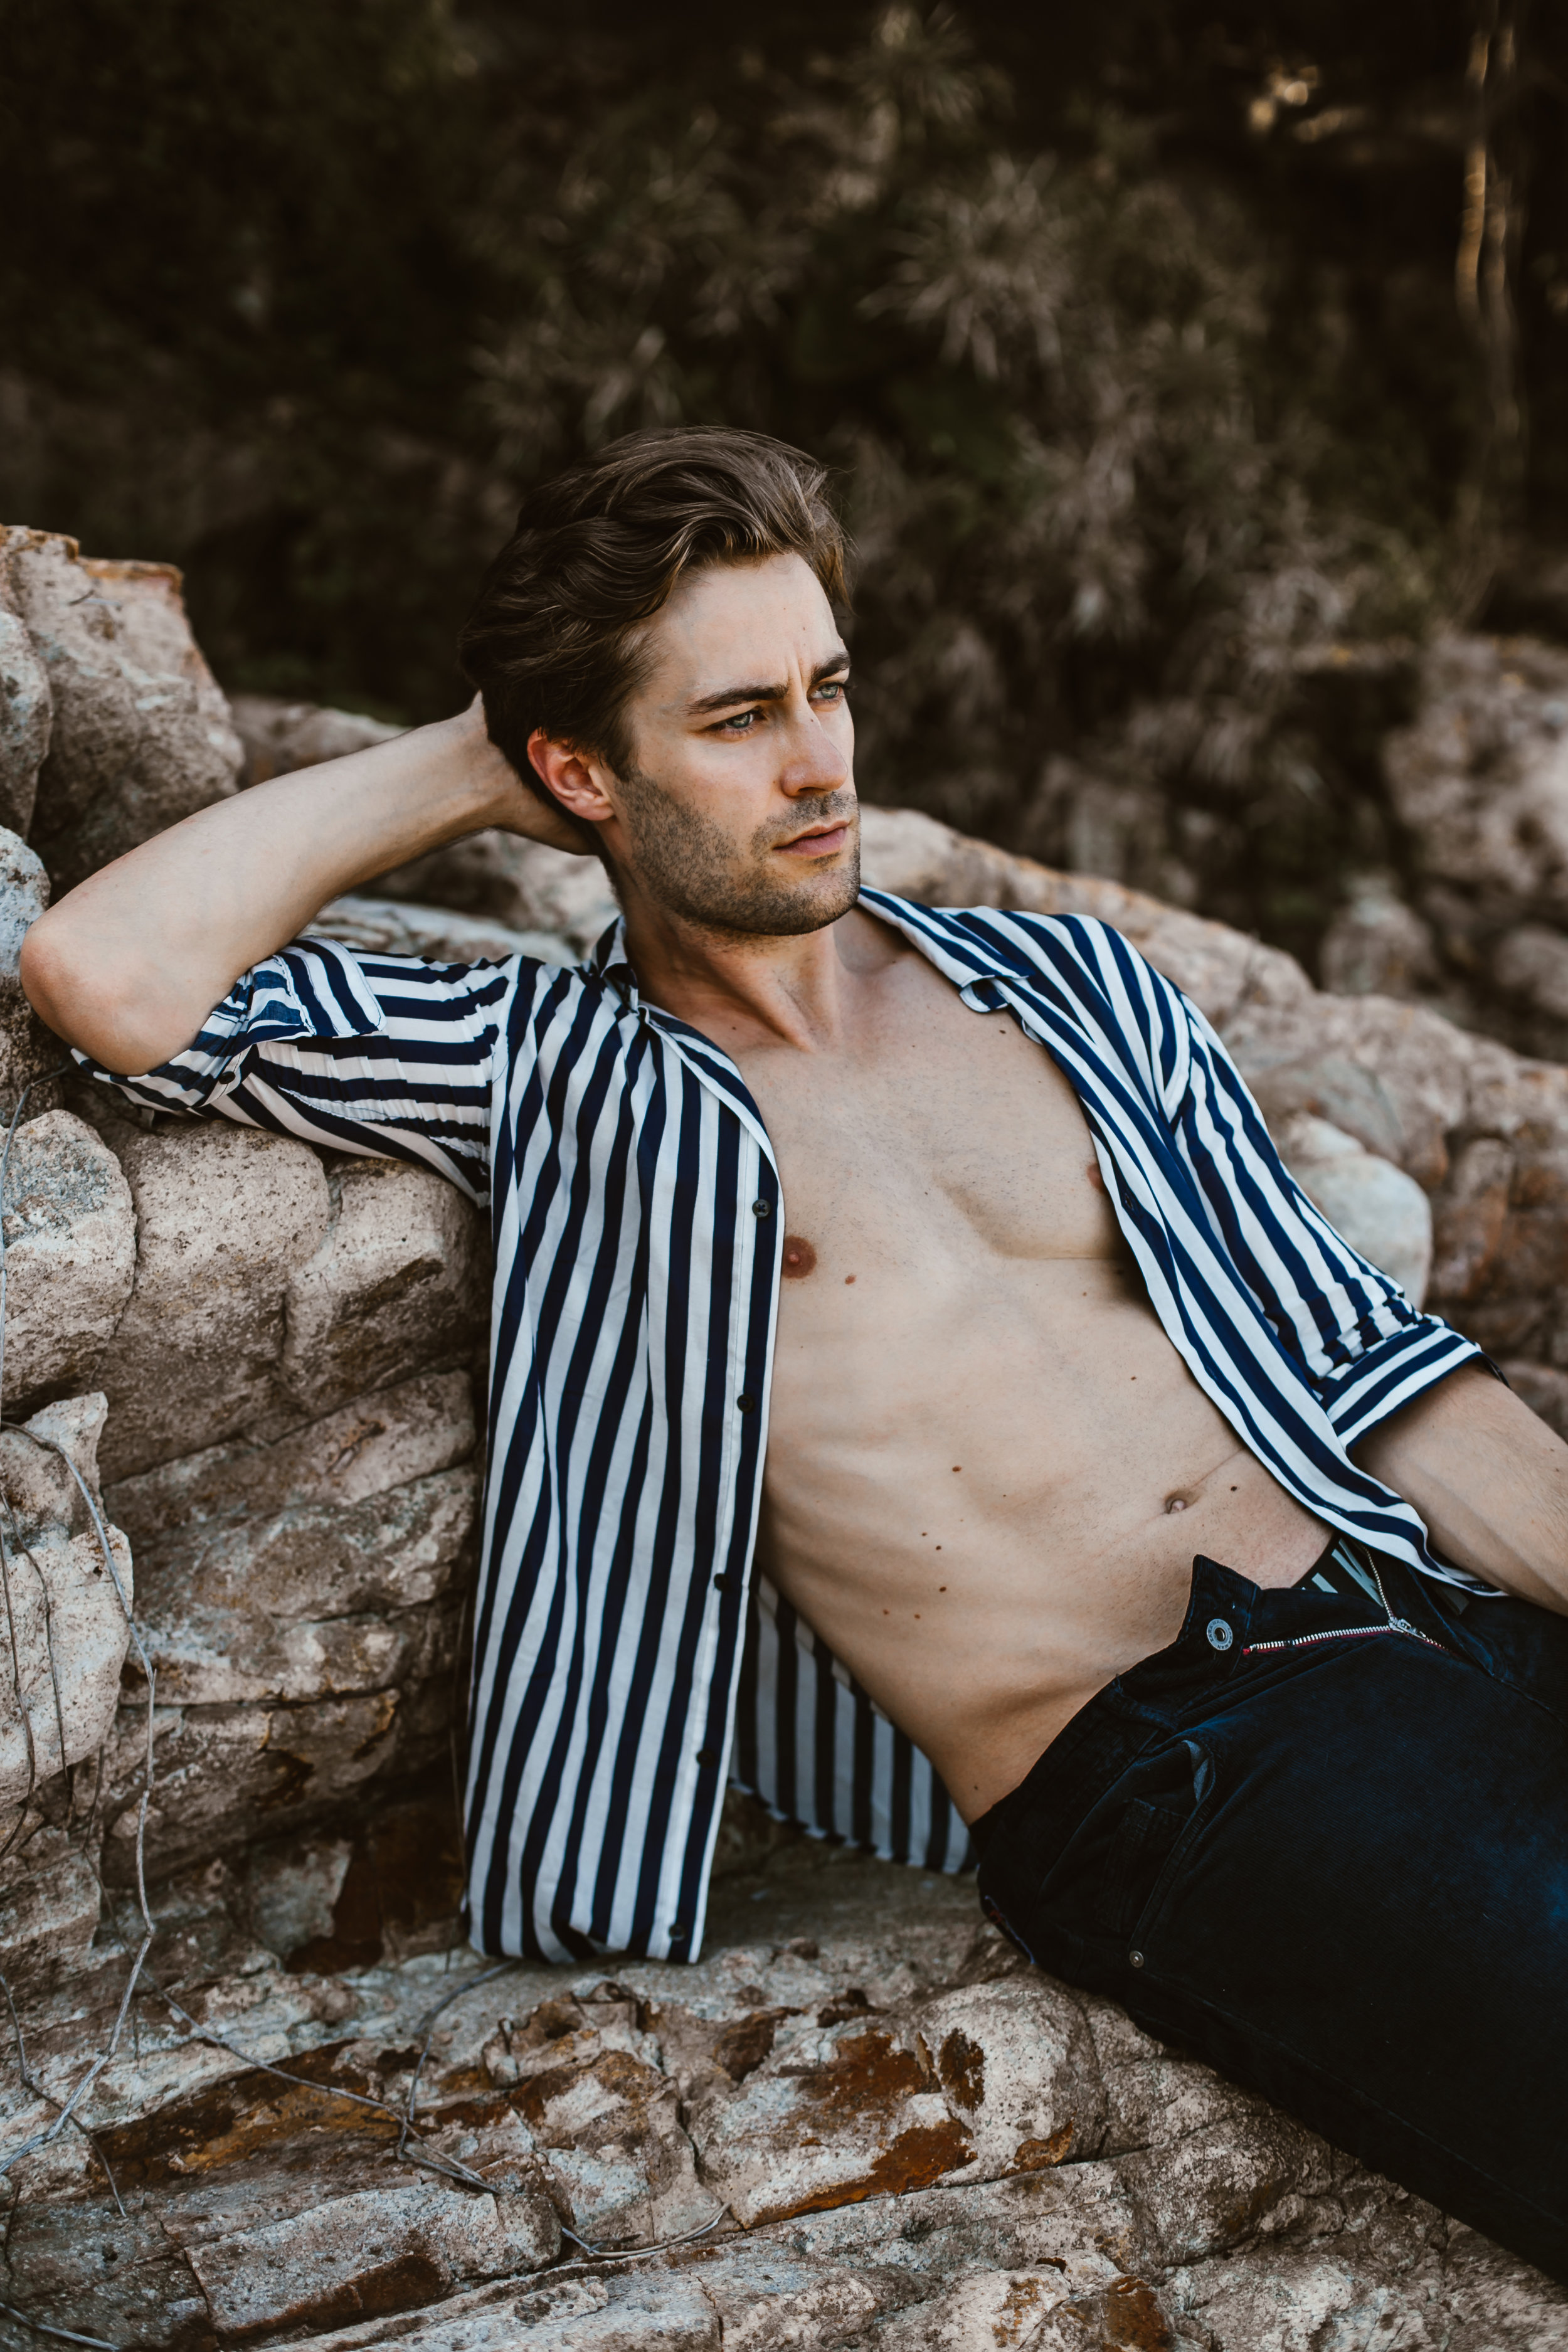 Jeremias wears striped shirt and corduroy jeans from Zara, and underwear from Calvin Klein